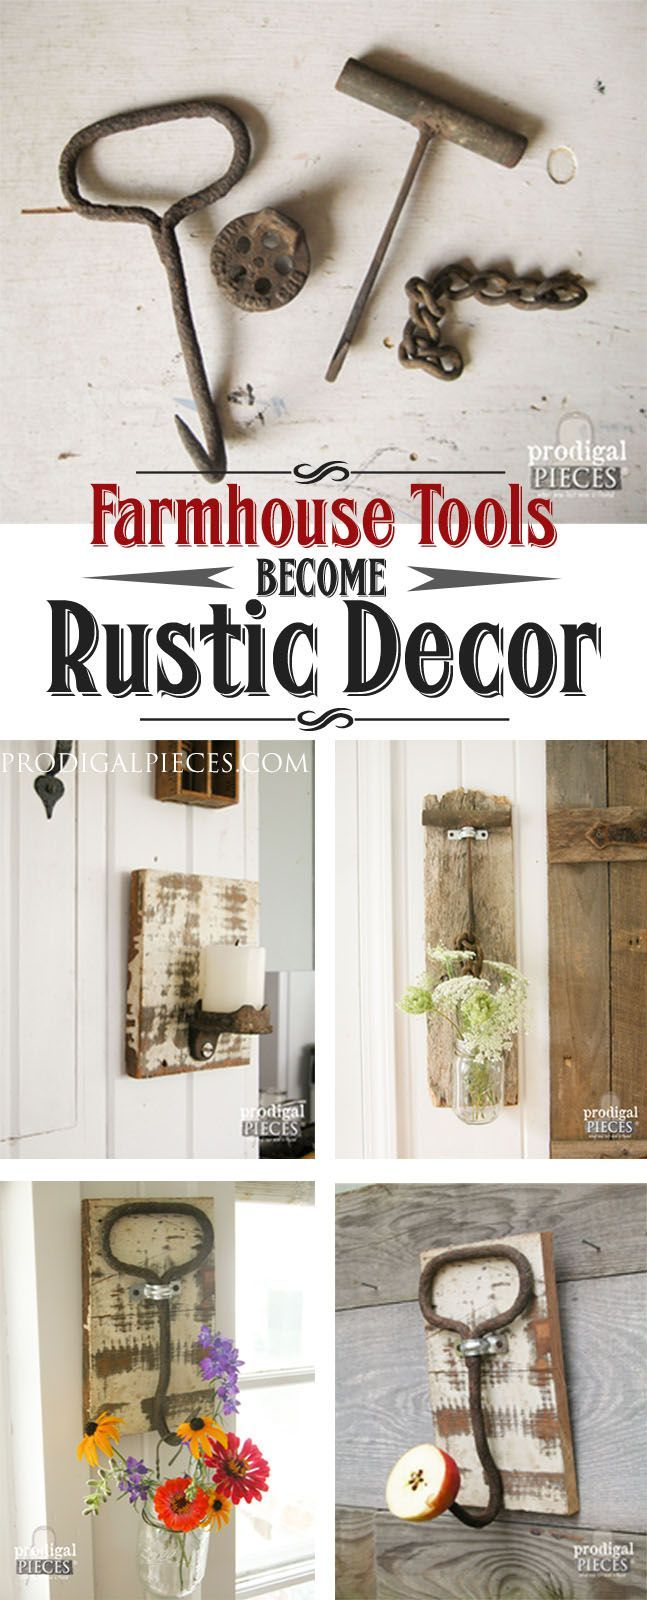 Rusty old farmhouse tools are perfect paired with reclaimed barn wood to make functional decor. Just grab a hanger, Ball jar, and a DIY attitude. by Prodigal Pieces www.prodigalpieces.com #prodigalpieces